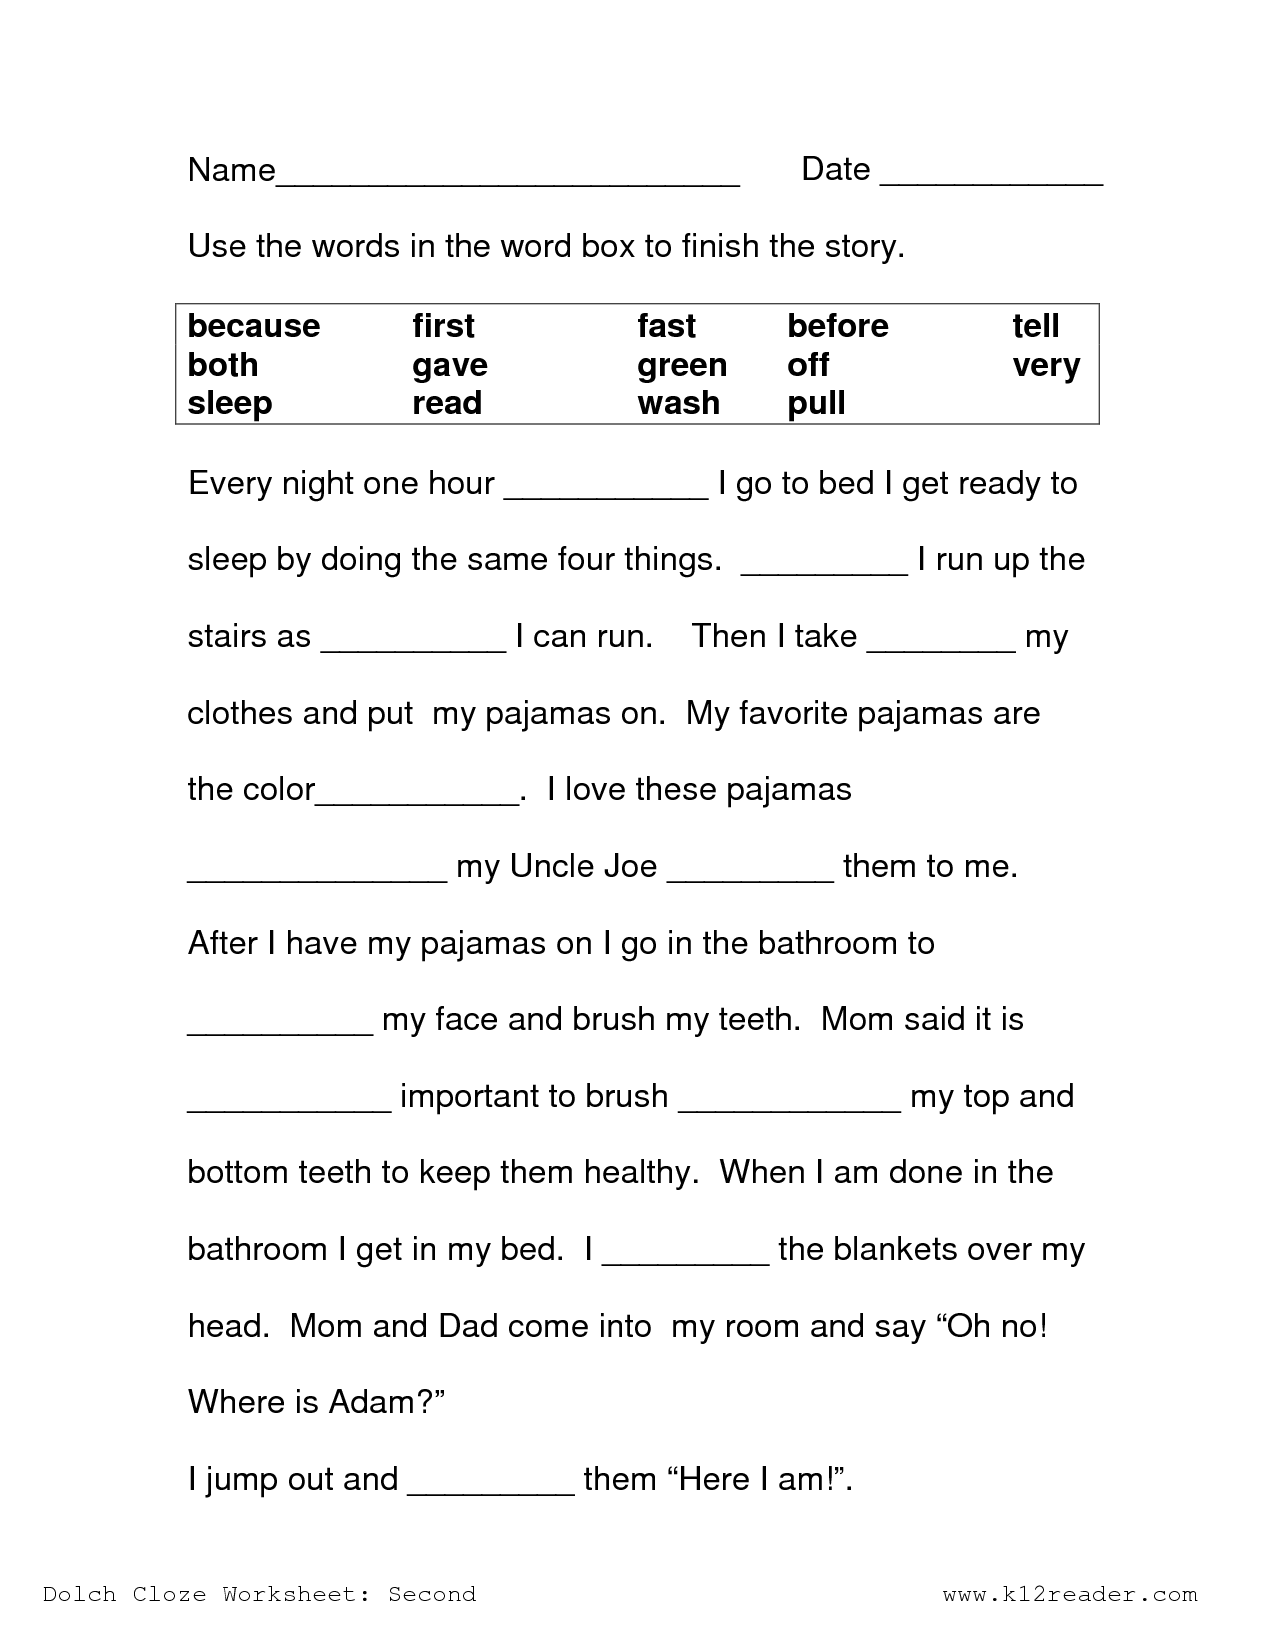 Image result for free cloze reading passages 2nd grade printables image result for free cloze reading passages 2nd grade ibookread ePUb